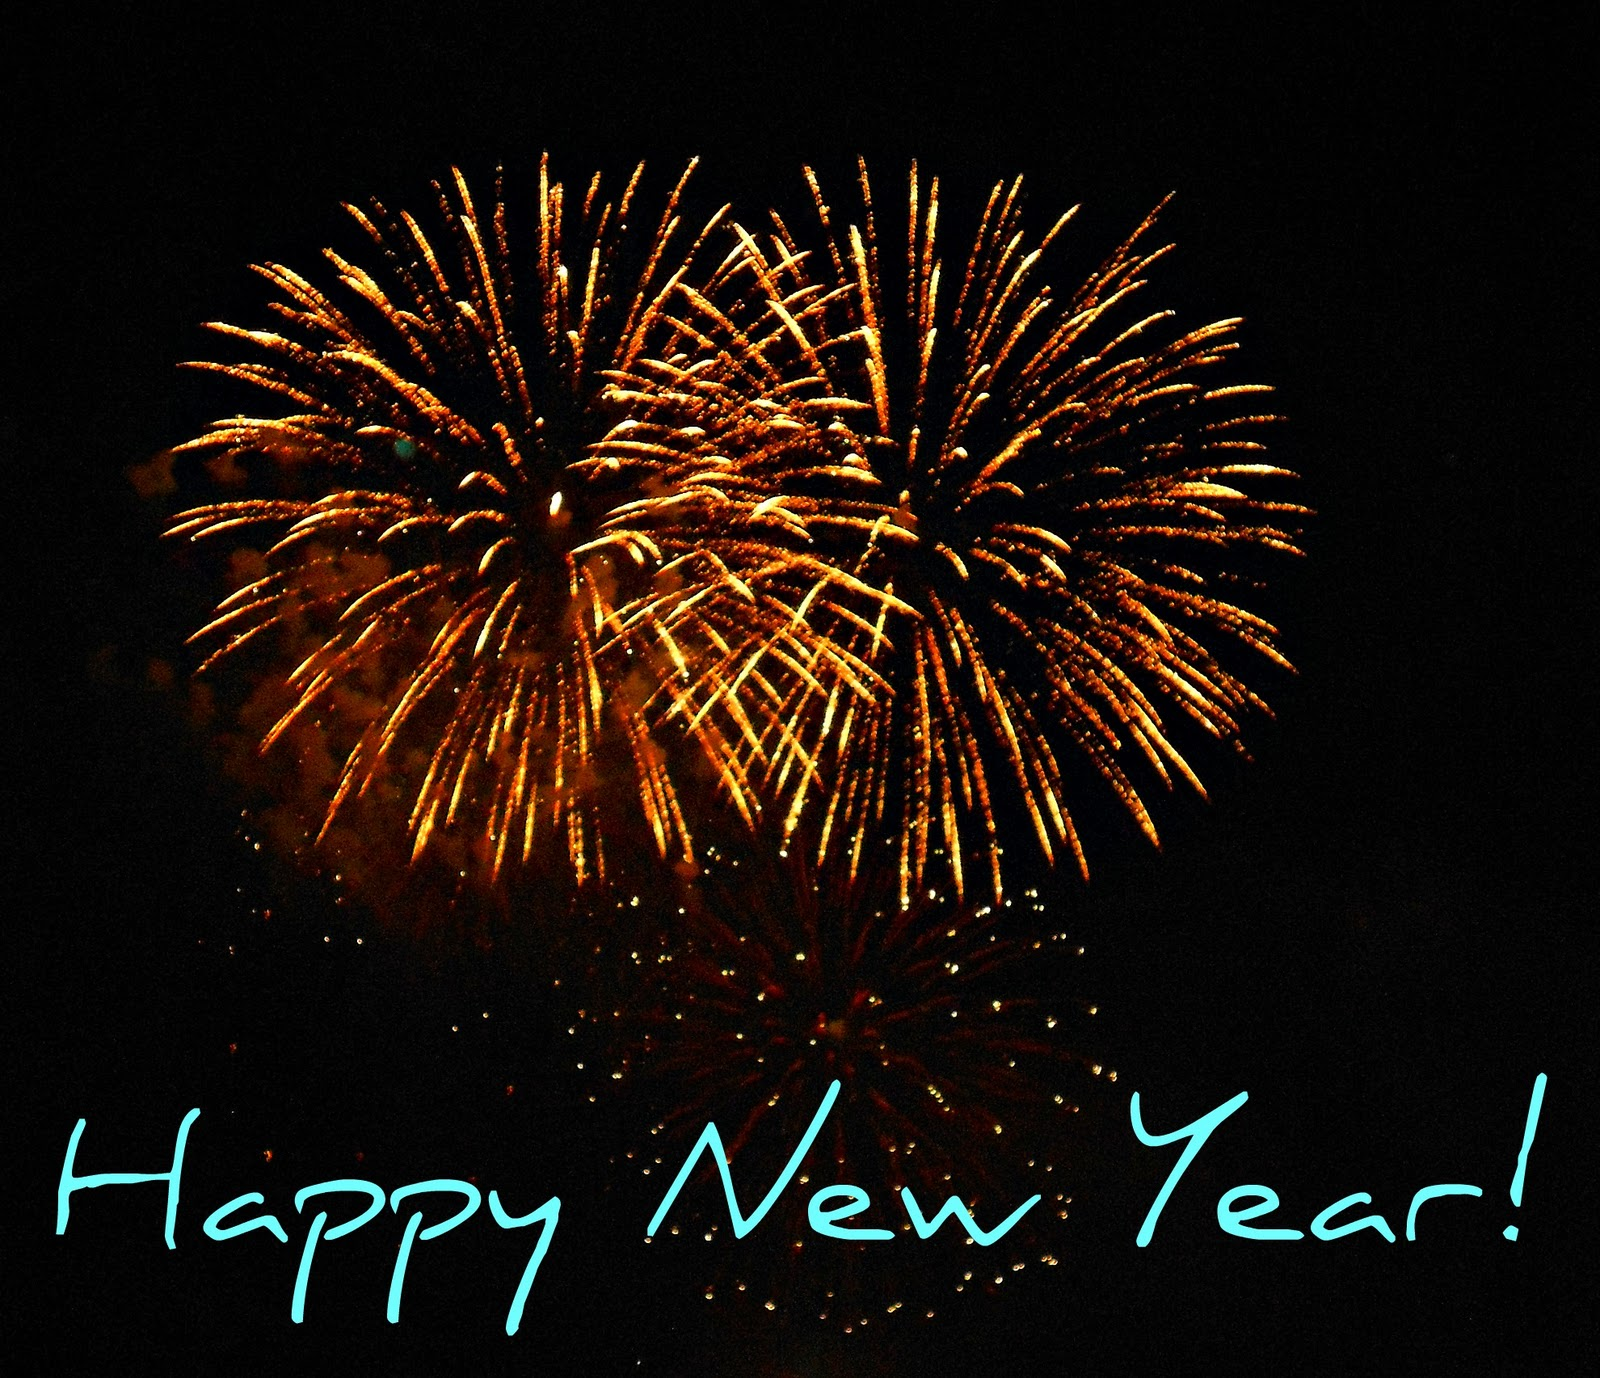 http://4.bp.blogspot.com/-EY5LeCCQeNo/Tv-VmajitnI/AAAAAAAADf8/WZtdmFNi-MY/s1600/Dans+le+Townhouse_Happy+New+Year.jpg